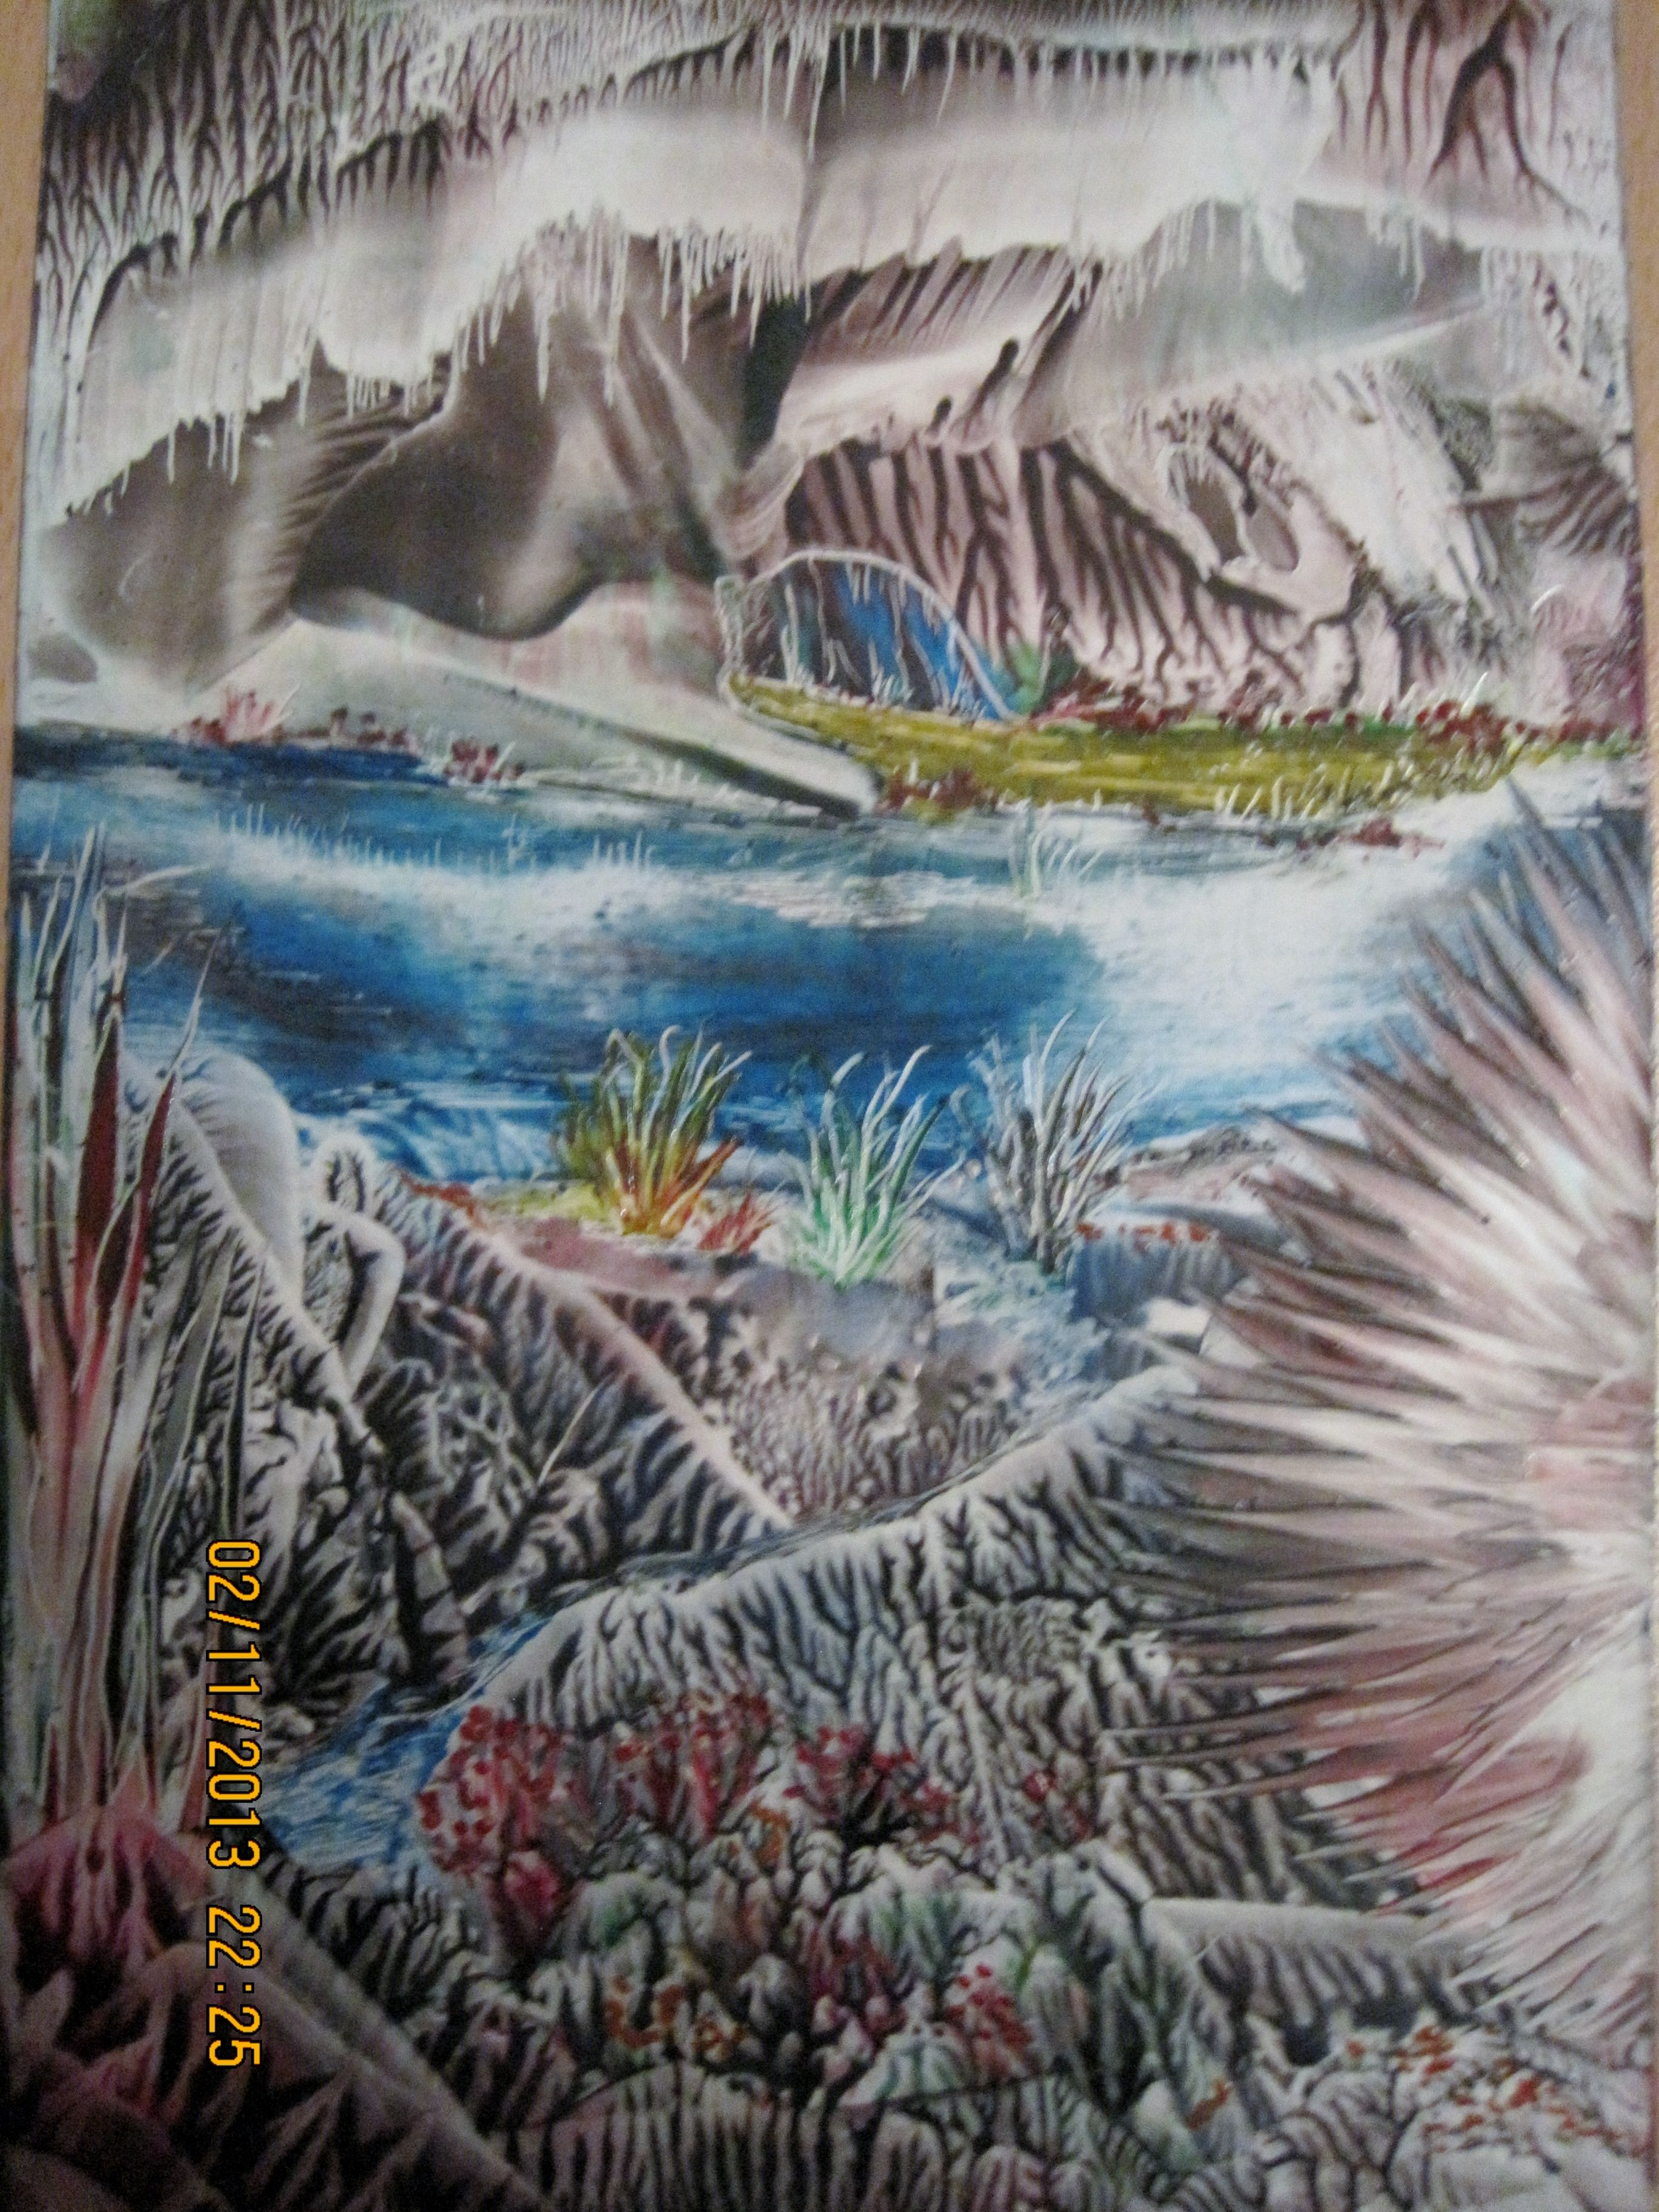 Encaustic art,using beeswax and travel iron and stylus,size A6,IMG 1358,Titled-WATER CAVERN.2013. By Peter Chattaway.